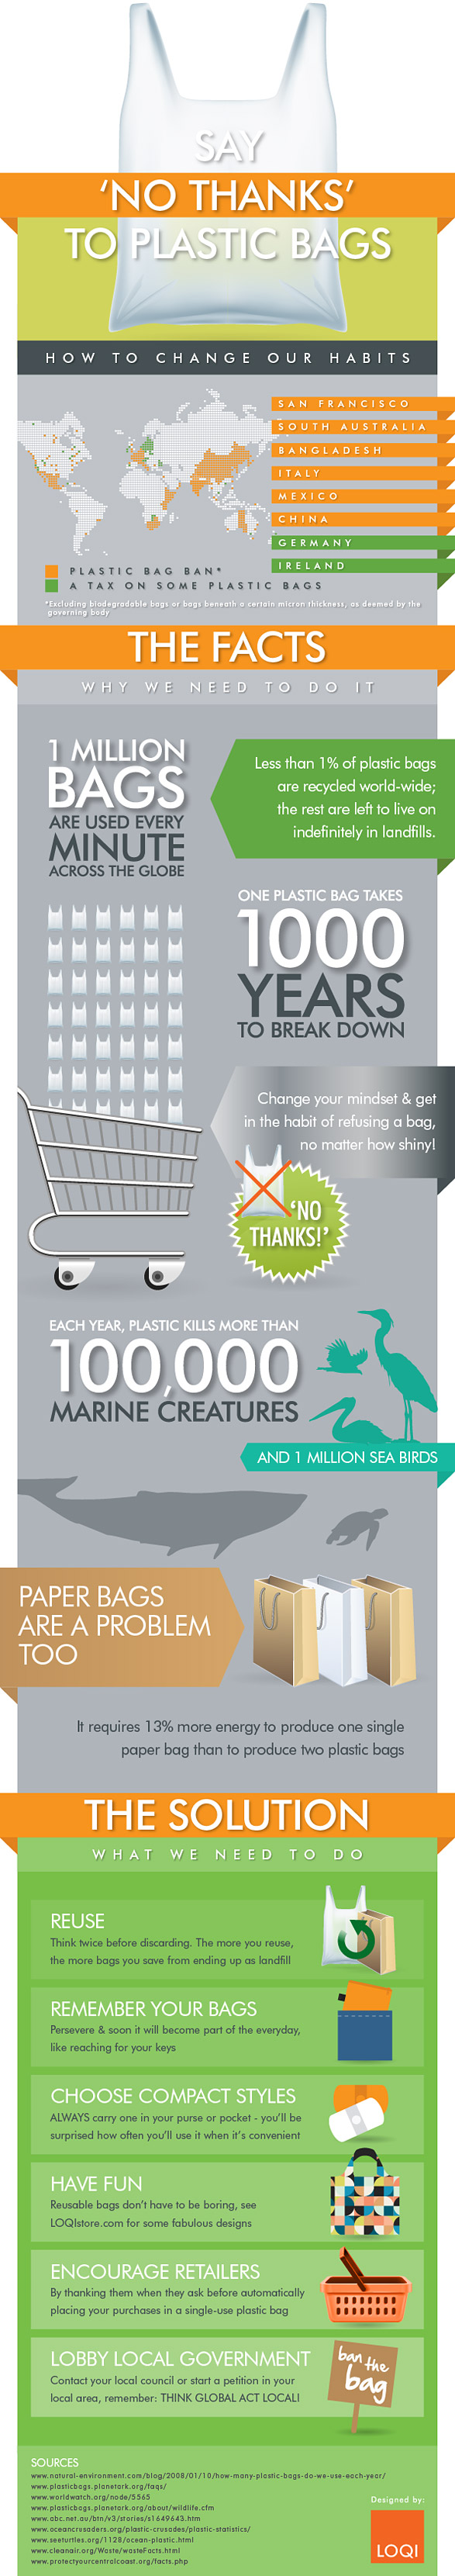 Say no thanks to plastic bags